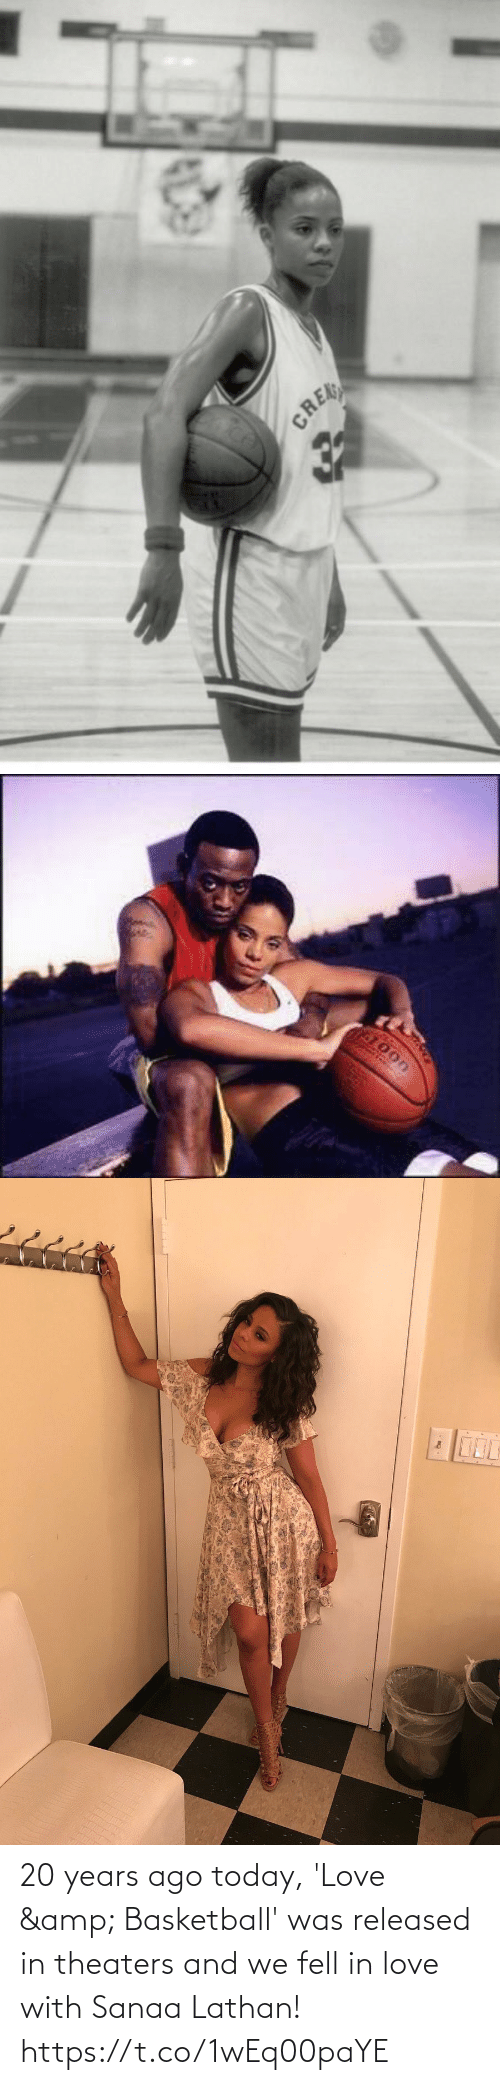 in love: 20 years ago today, 'Love & Basketball' was released in theaters and we fell in love with Sanaa Lathan! https://t.co/1wEq00paYE